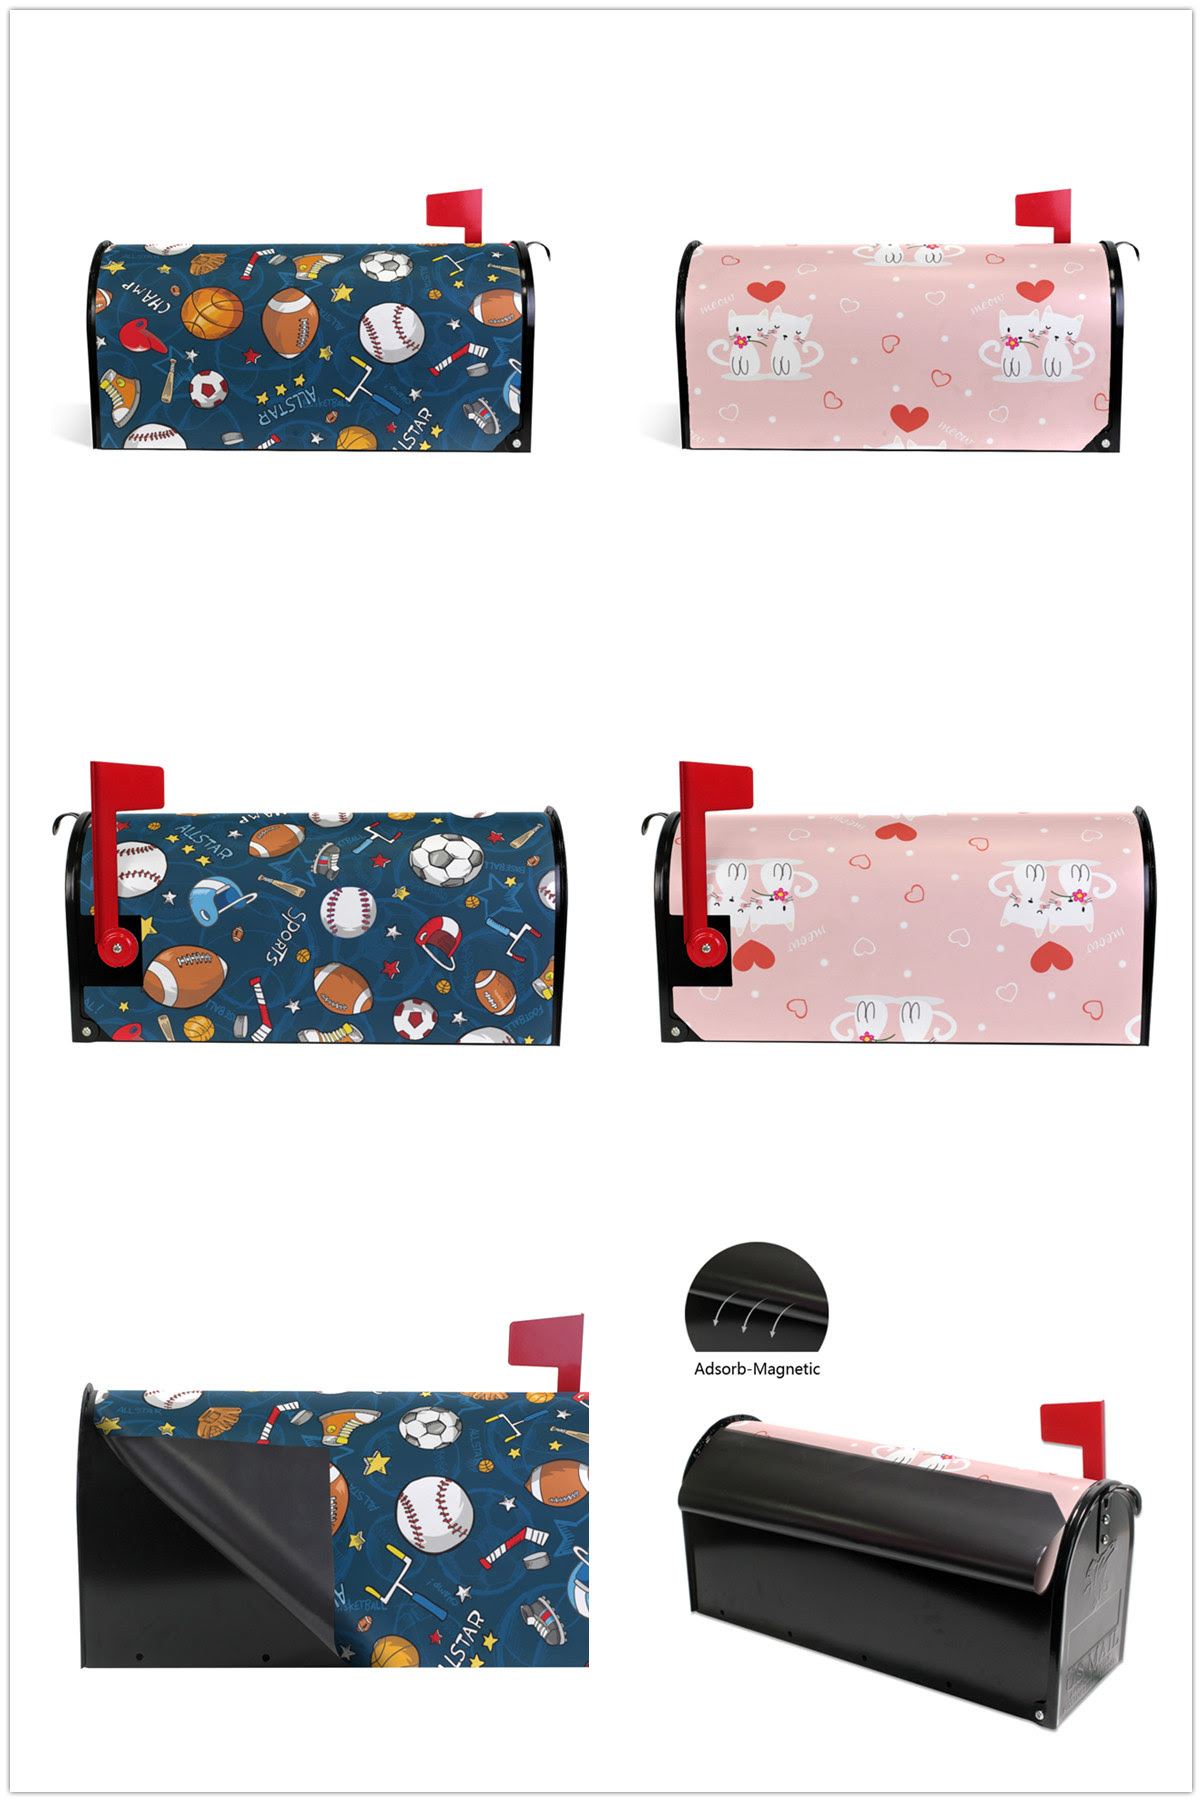 Personalized Customization Magnetic Mailbox Wrap For Decorative Magnetic Mailbox Covers Suitable For Large Size Mailboxes Buy Magnetic Pvc Mailbox Cover Custom Wrist Wraps Magnetic Mailbox Wrap Printing Product On Alibaba Com